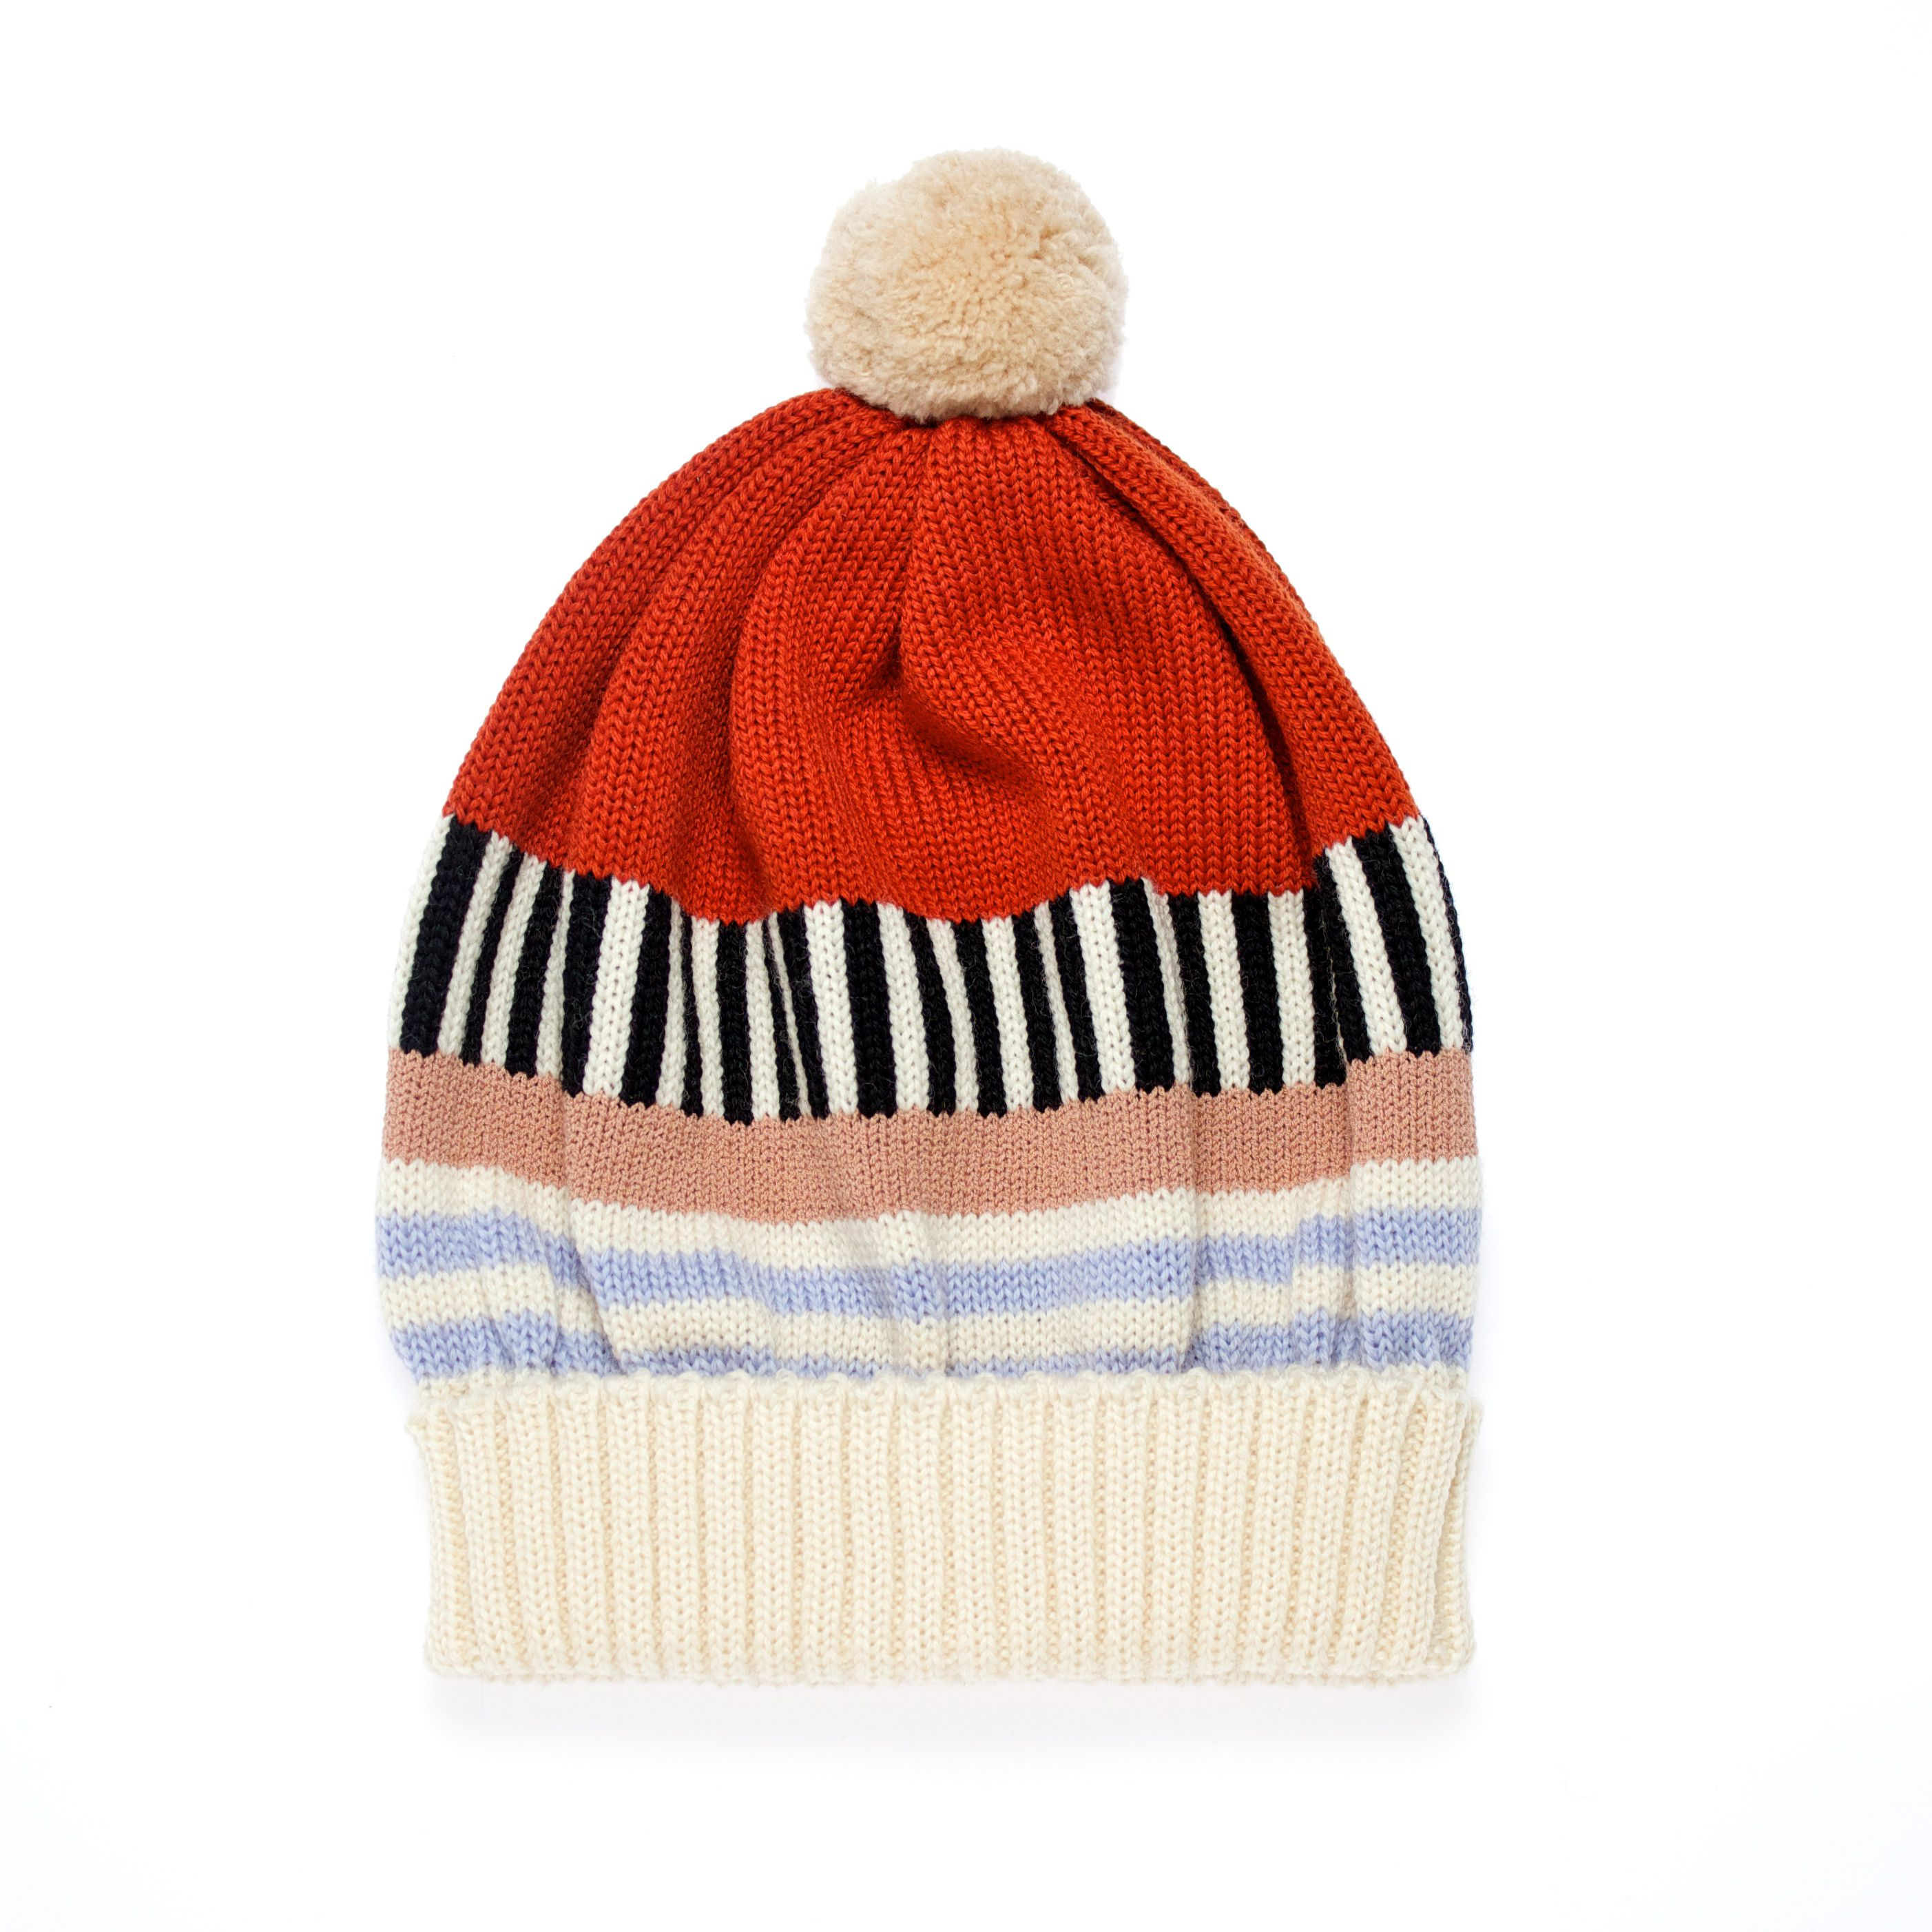 c7937a35a8c ... promo code for back to memphis margot me knit hat katie fair isle beanie  multi color